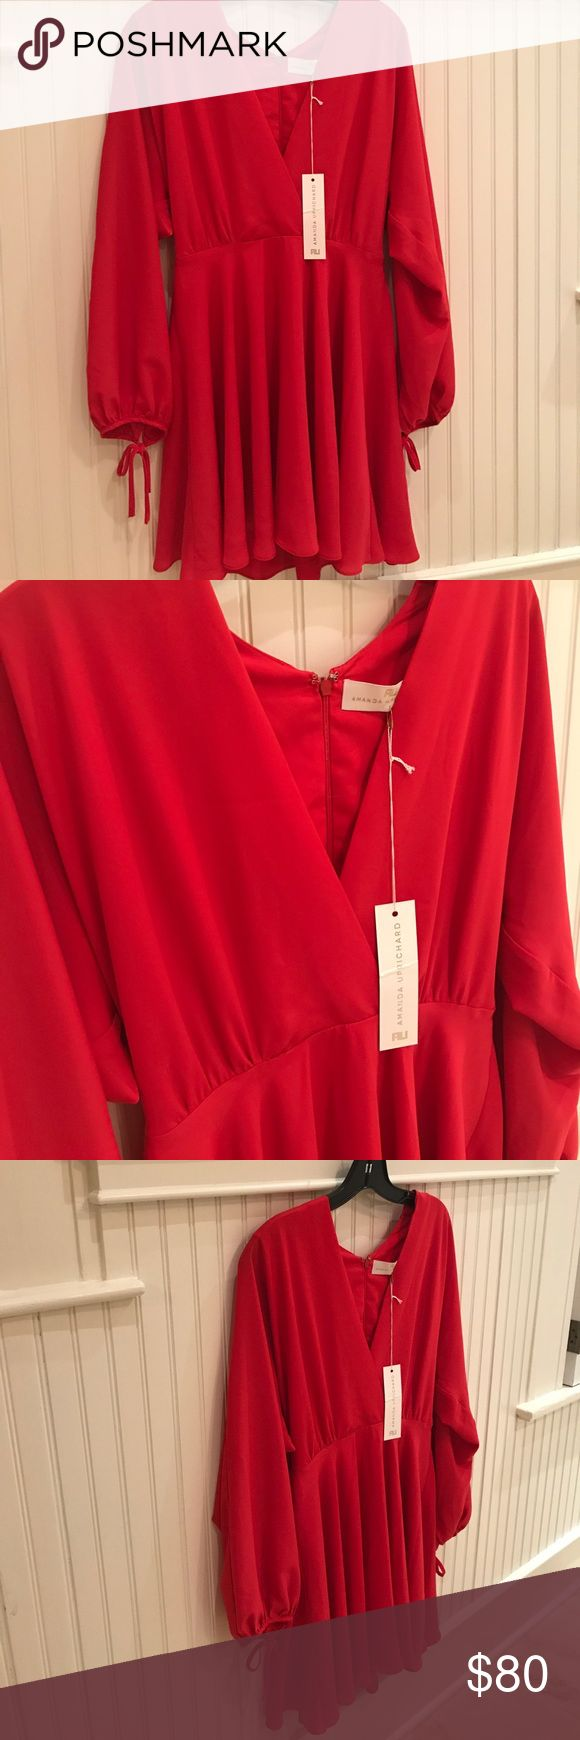 NWT Amanda Uprichard Dress NWT Silk Amanda Uprichard Dress in beautiful vibrant bright red - perfect for the holidays! Deep V top with a slightly flared skirt. Sleeves tie at the wrists making this a fun twist.  Size Small. Amanda Uprichard Dresses